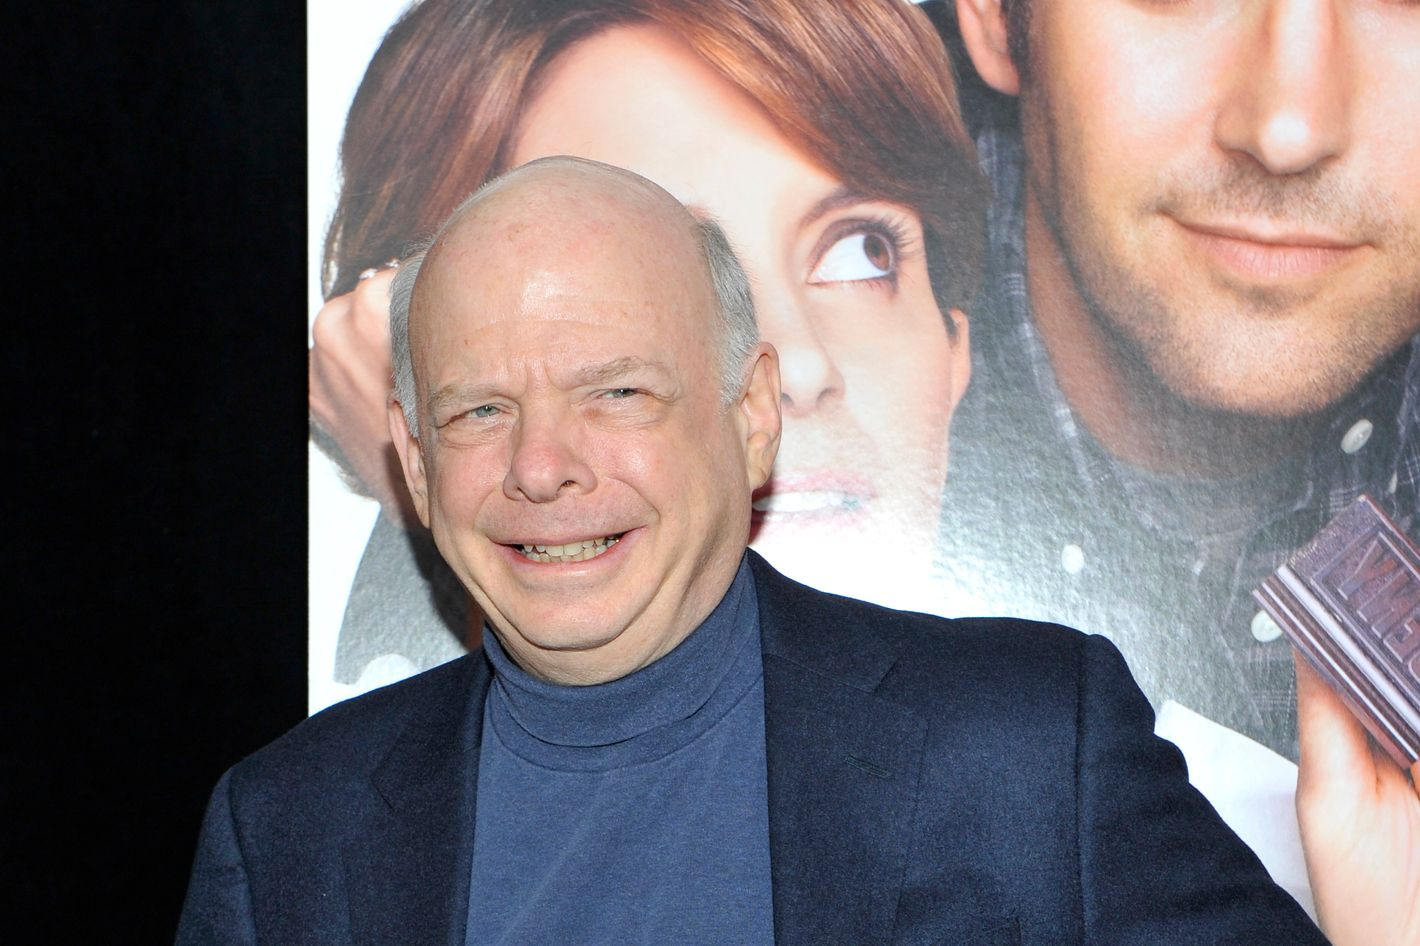 """NEW YORK, NY - MARCH 05: Wallace Shawn attends the """"Admission"""" premiere at AMC Loews Lincoln Square 13 on March 5, 2013 in New York City. (Photo by Michael N. Todaro/FilmMagic)"""